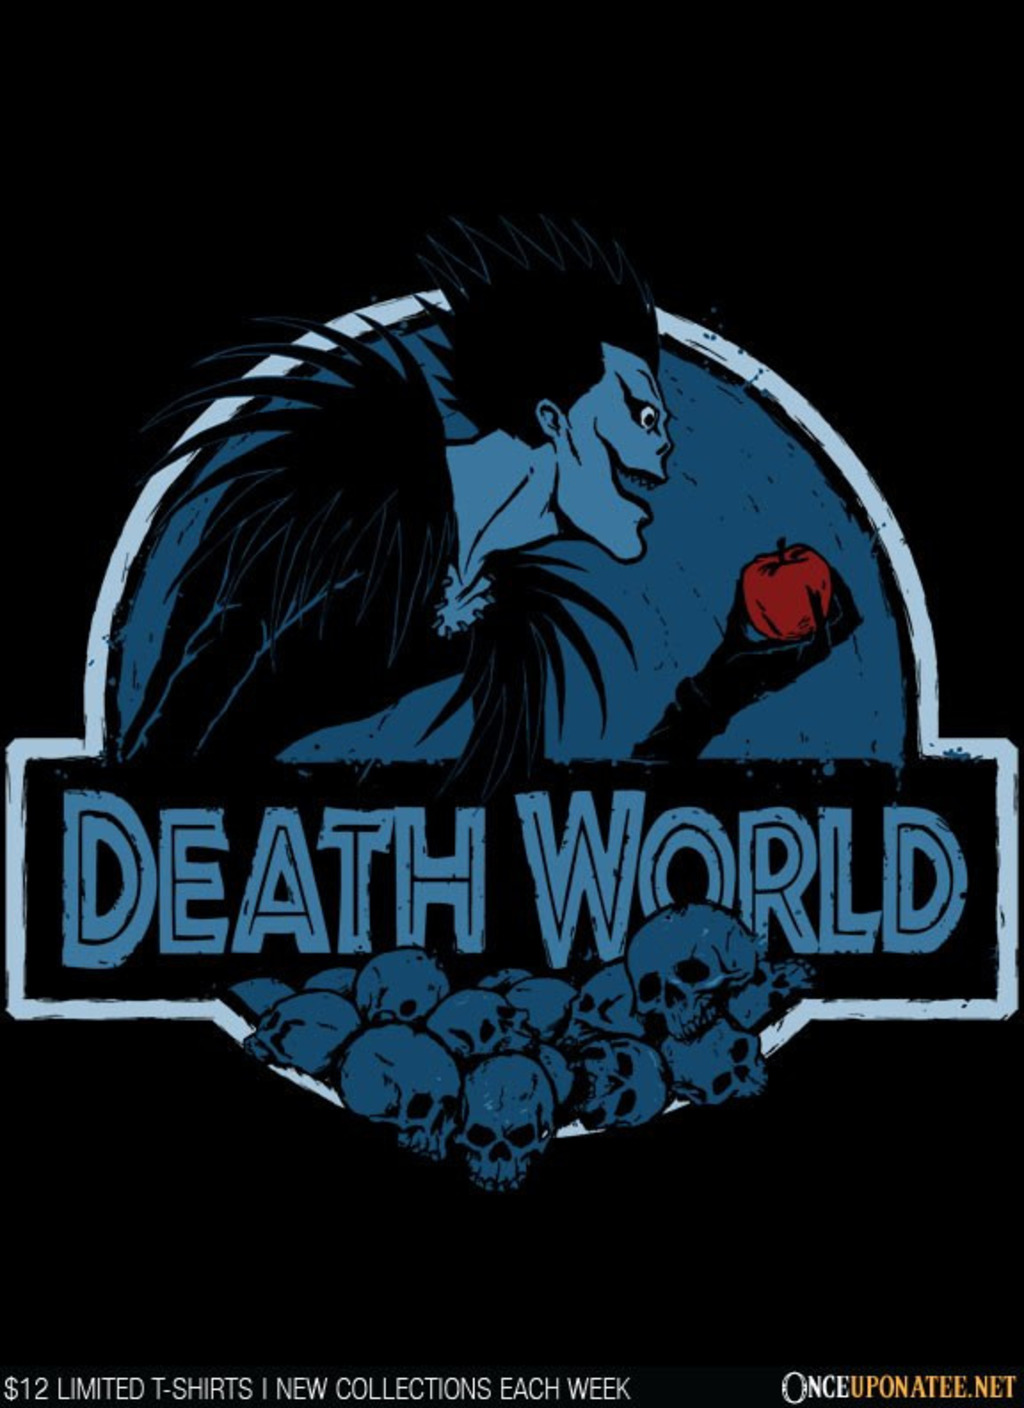 Once Upon a Tee: Death World